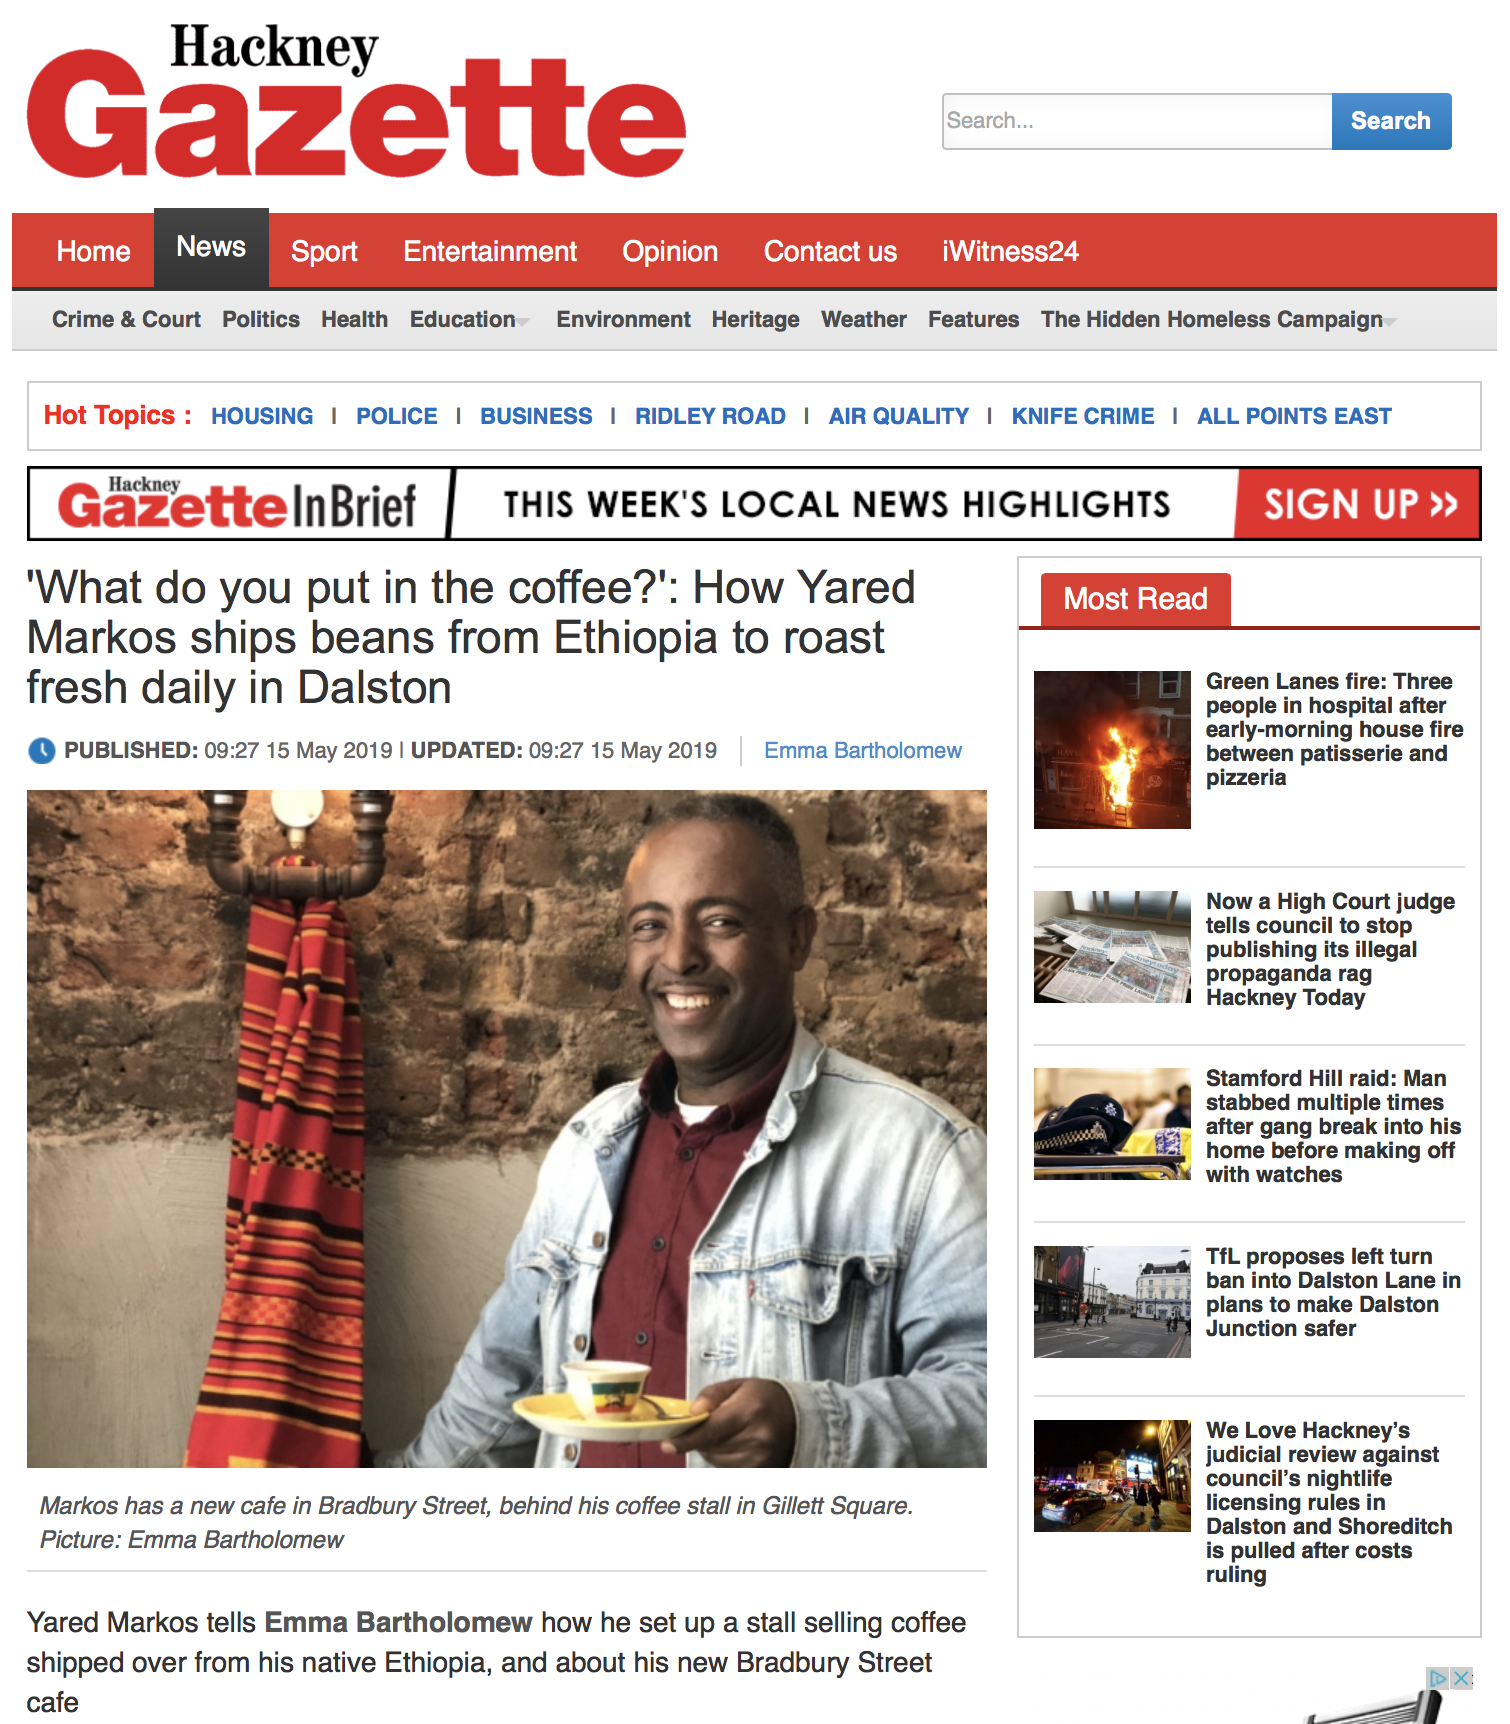 https://www.hackneygazette.co.uk/news/yared-markos-on-founding-kaffa-coffee-1-6051095